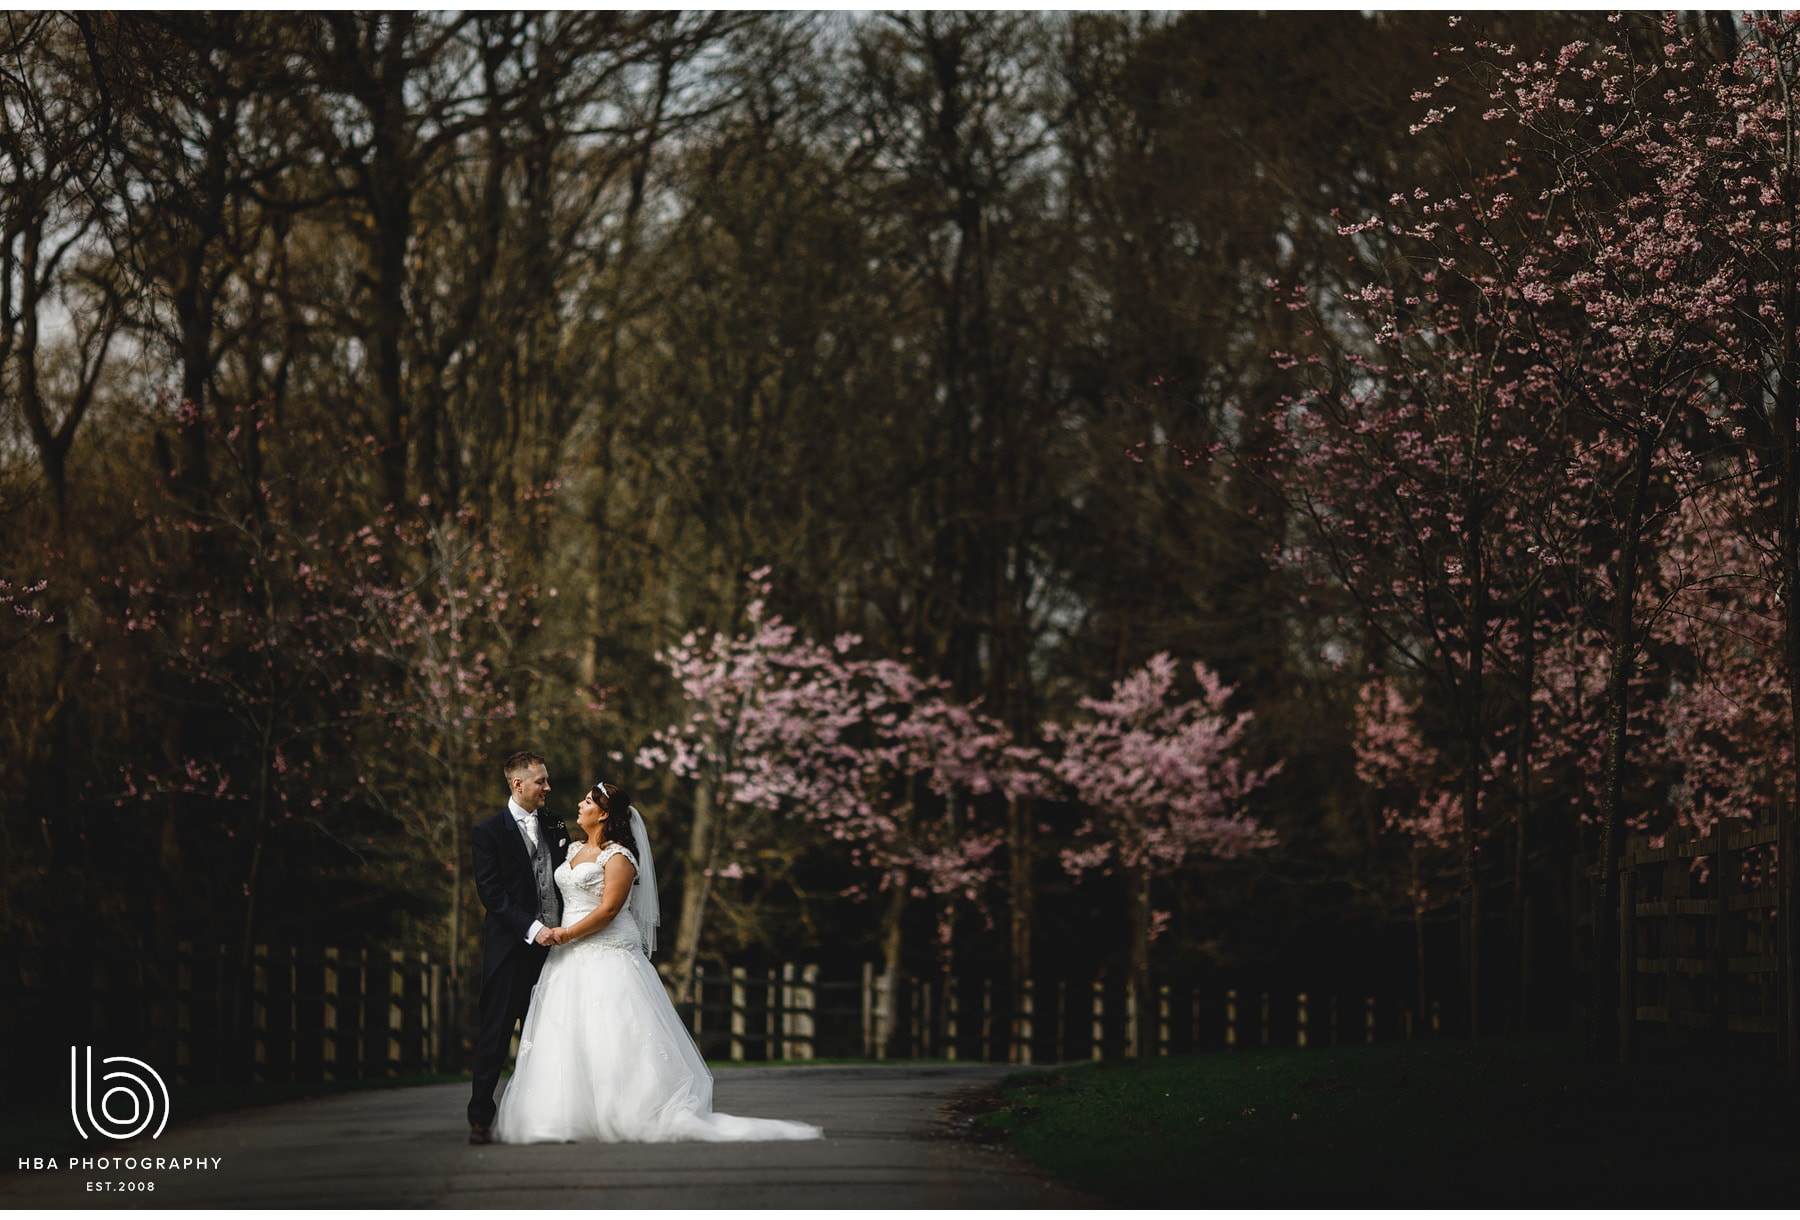 the bride & groom in the blossom